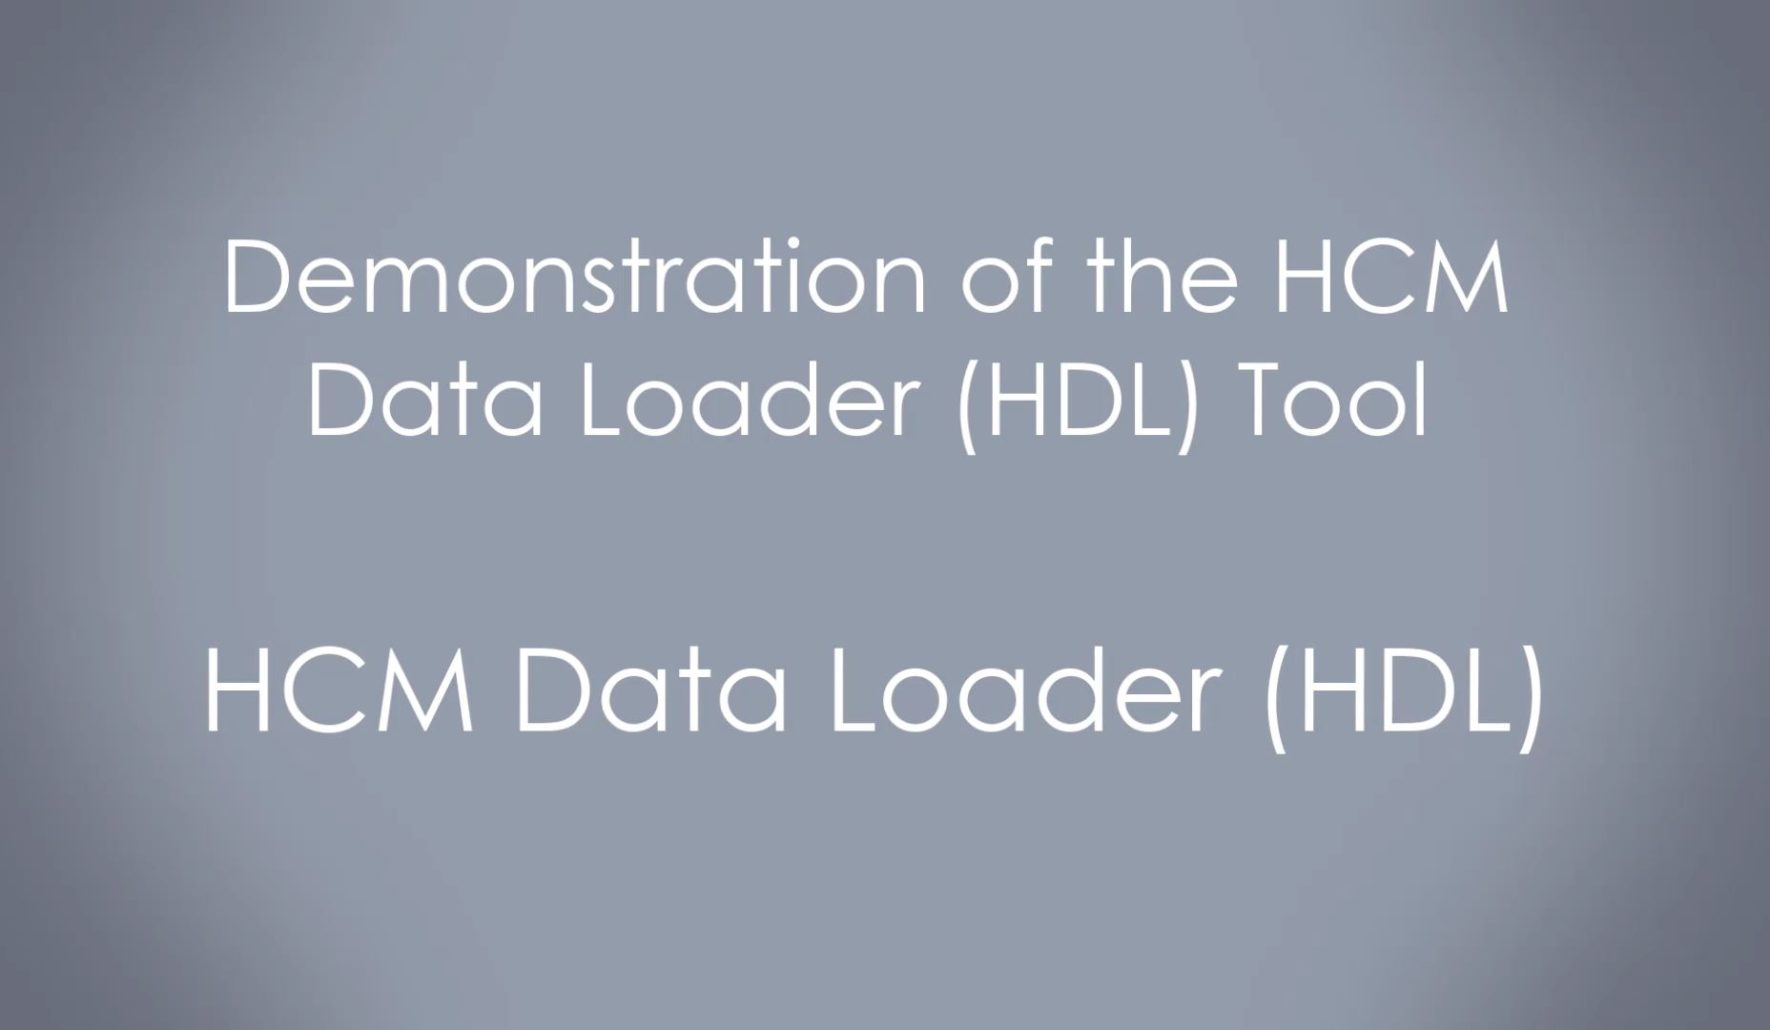 hcm-data-loader-tool